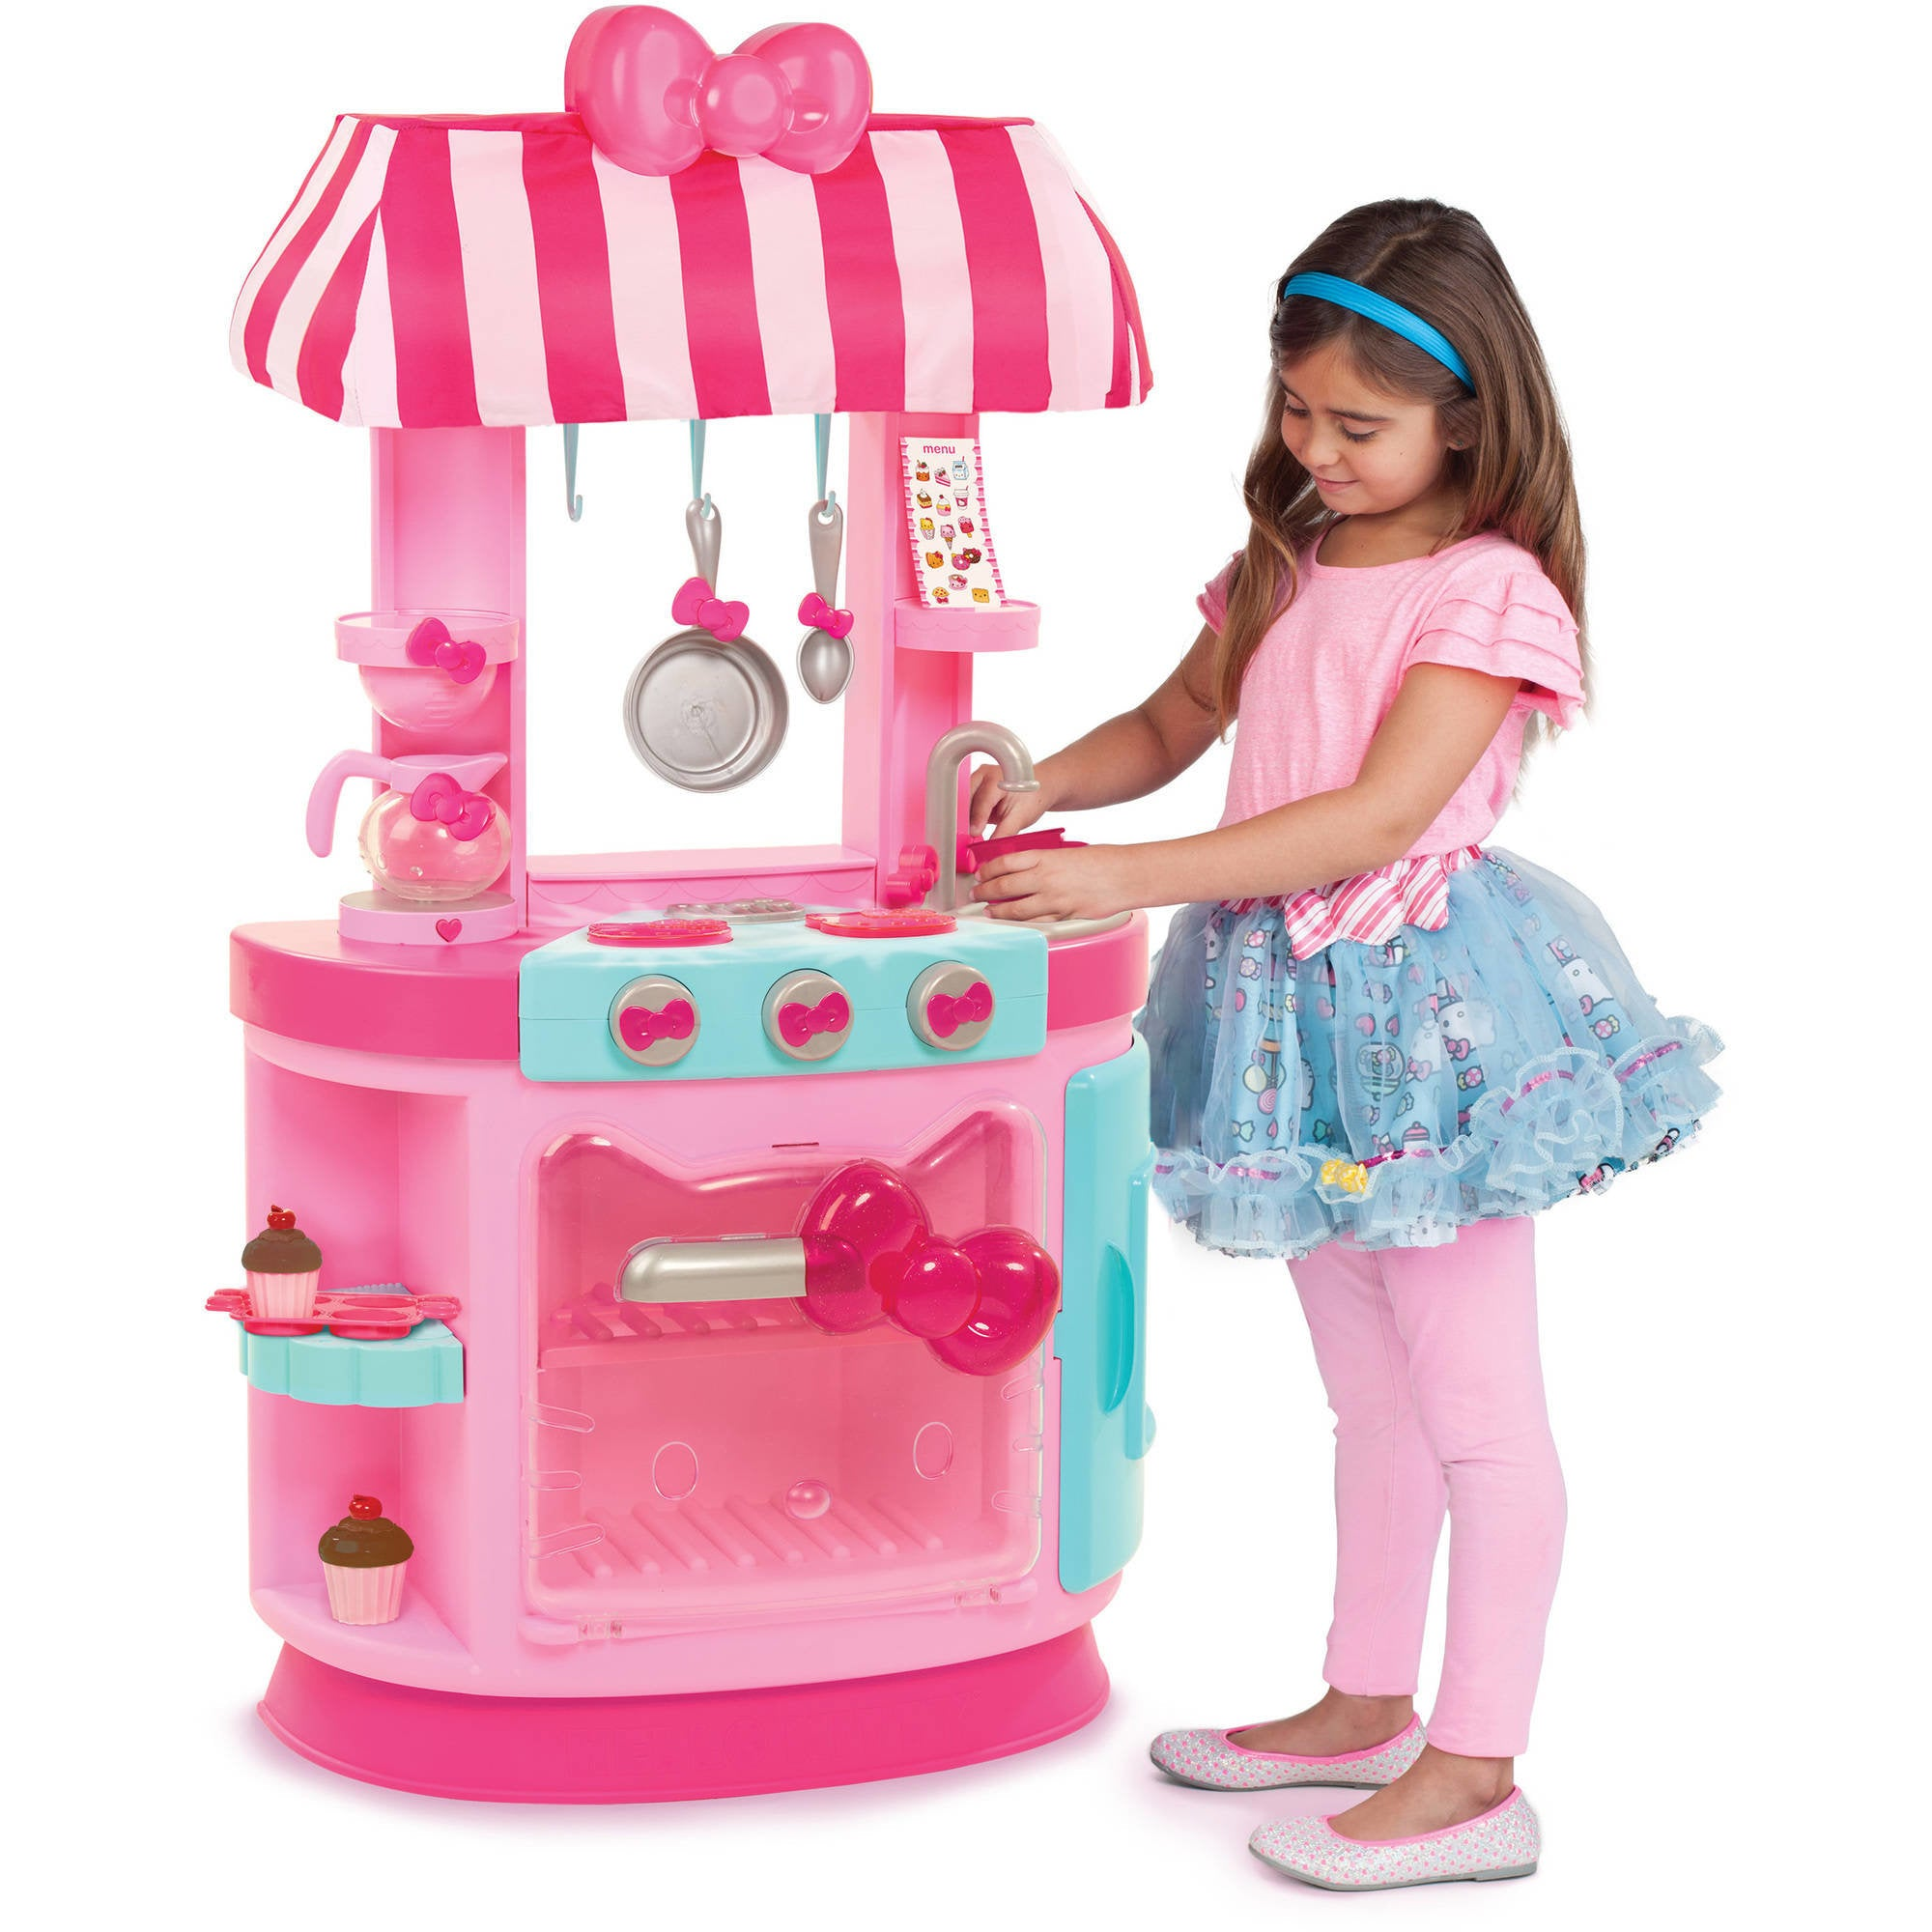 Kitchens, Playfood & Housekeeping Hello Kitty Kitchen Cafe